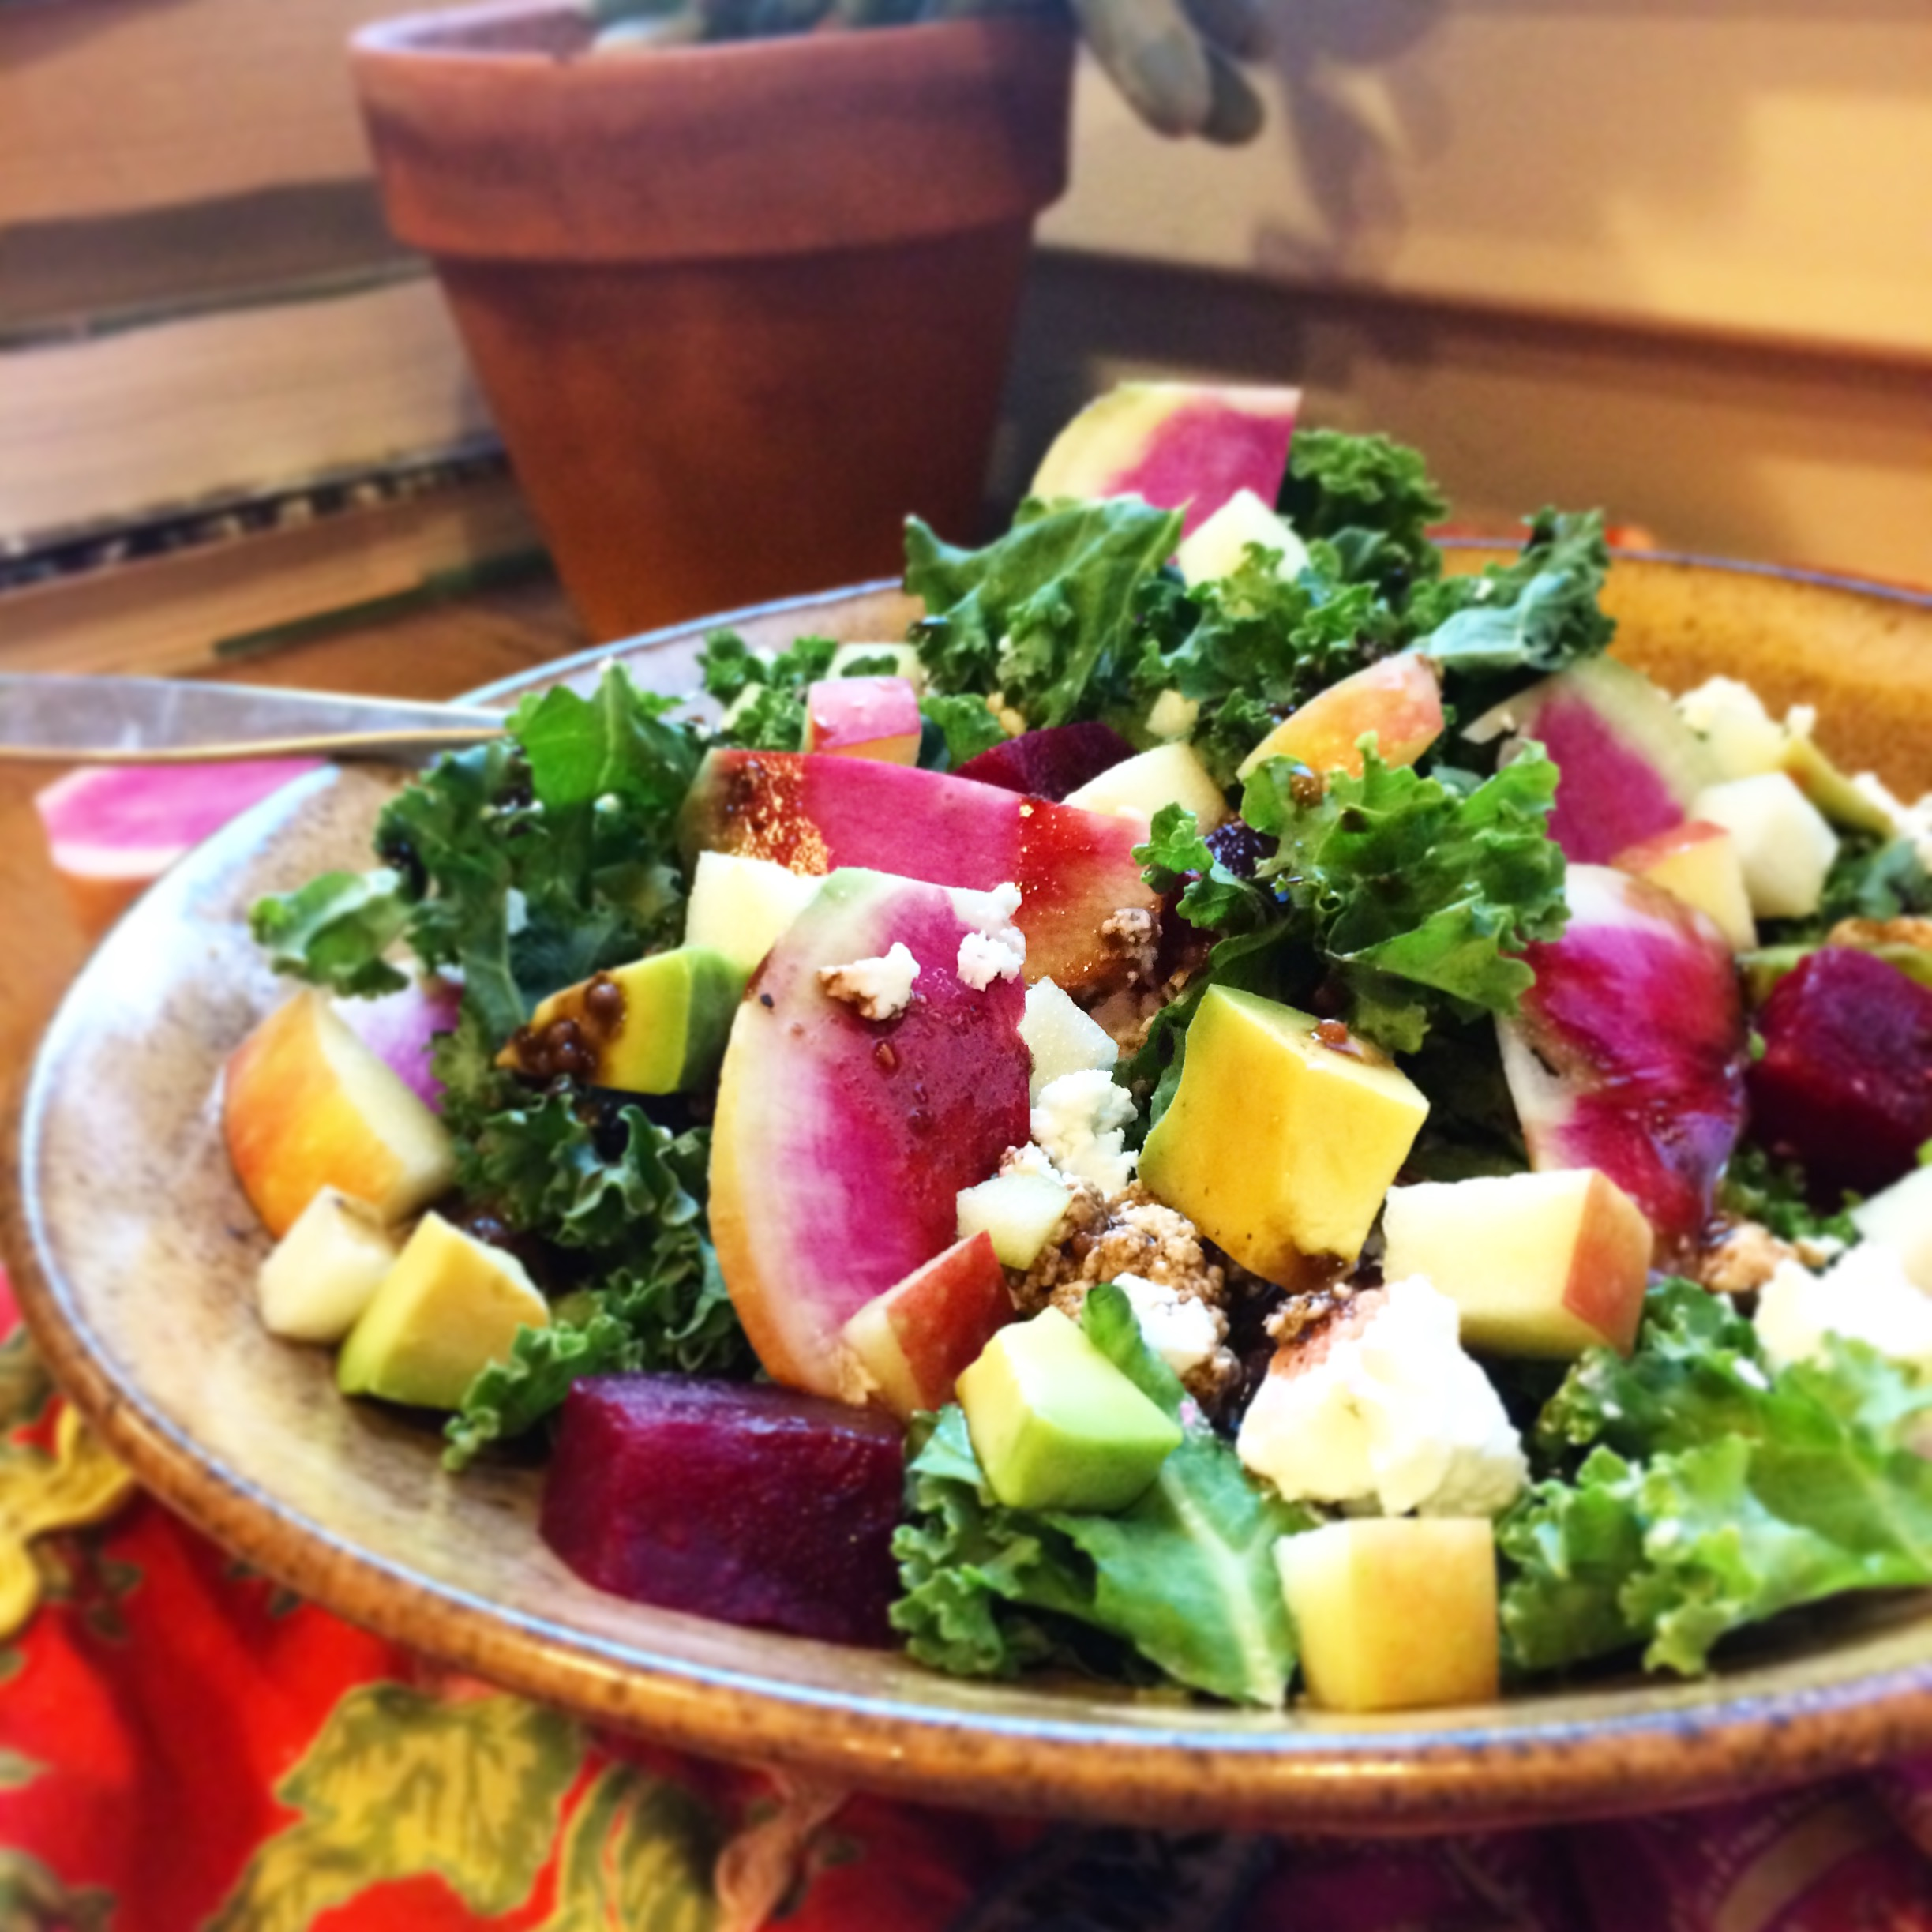 watermelon radish, roasted beet and goat cheese salad